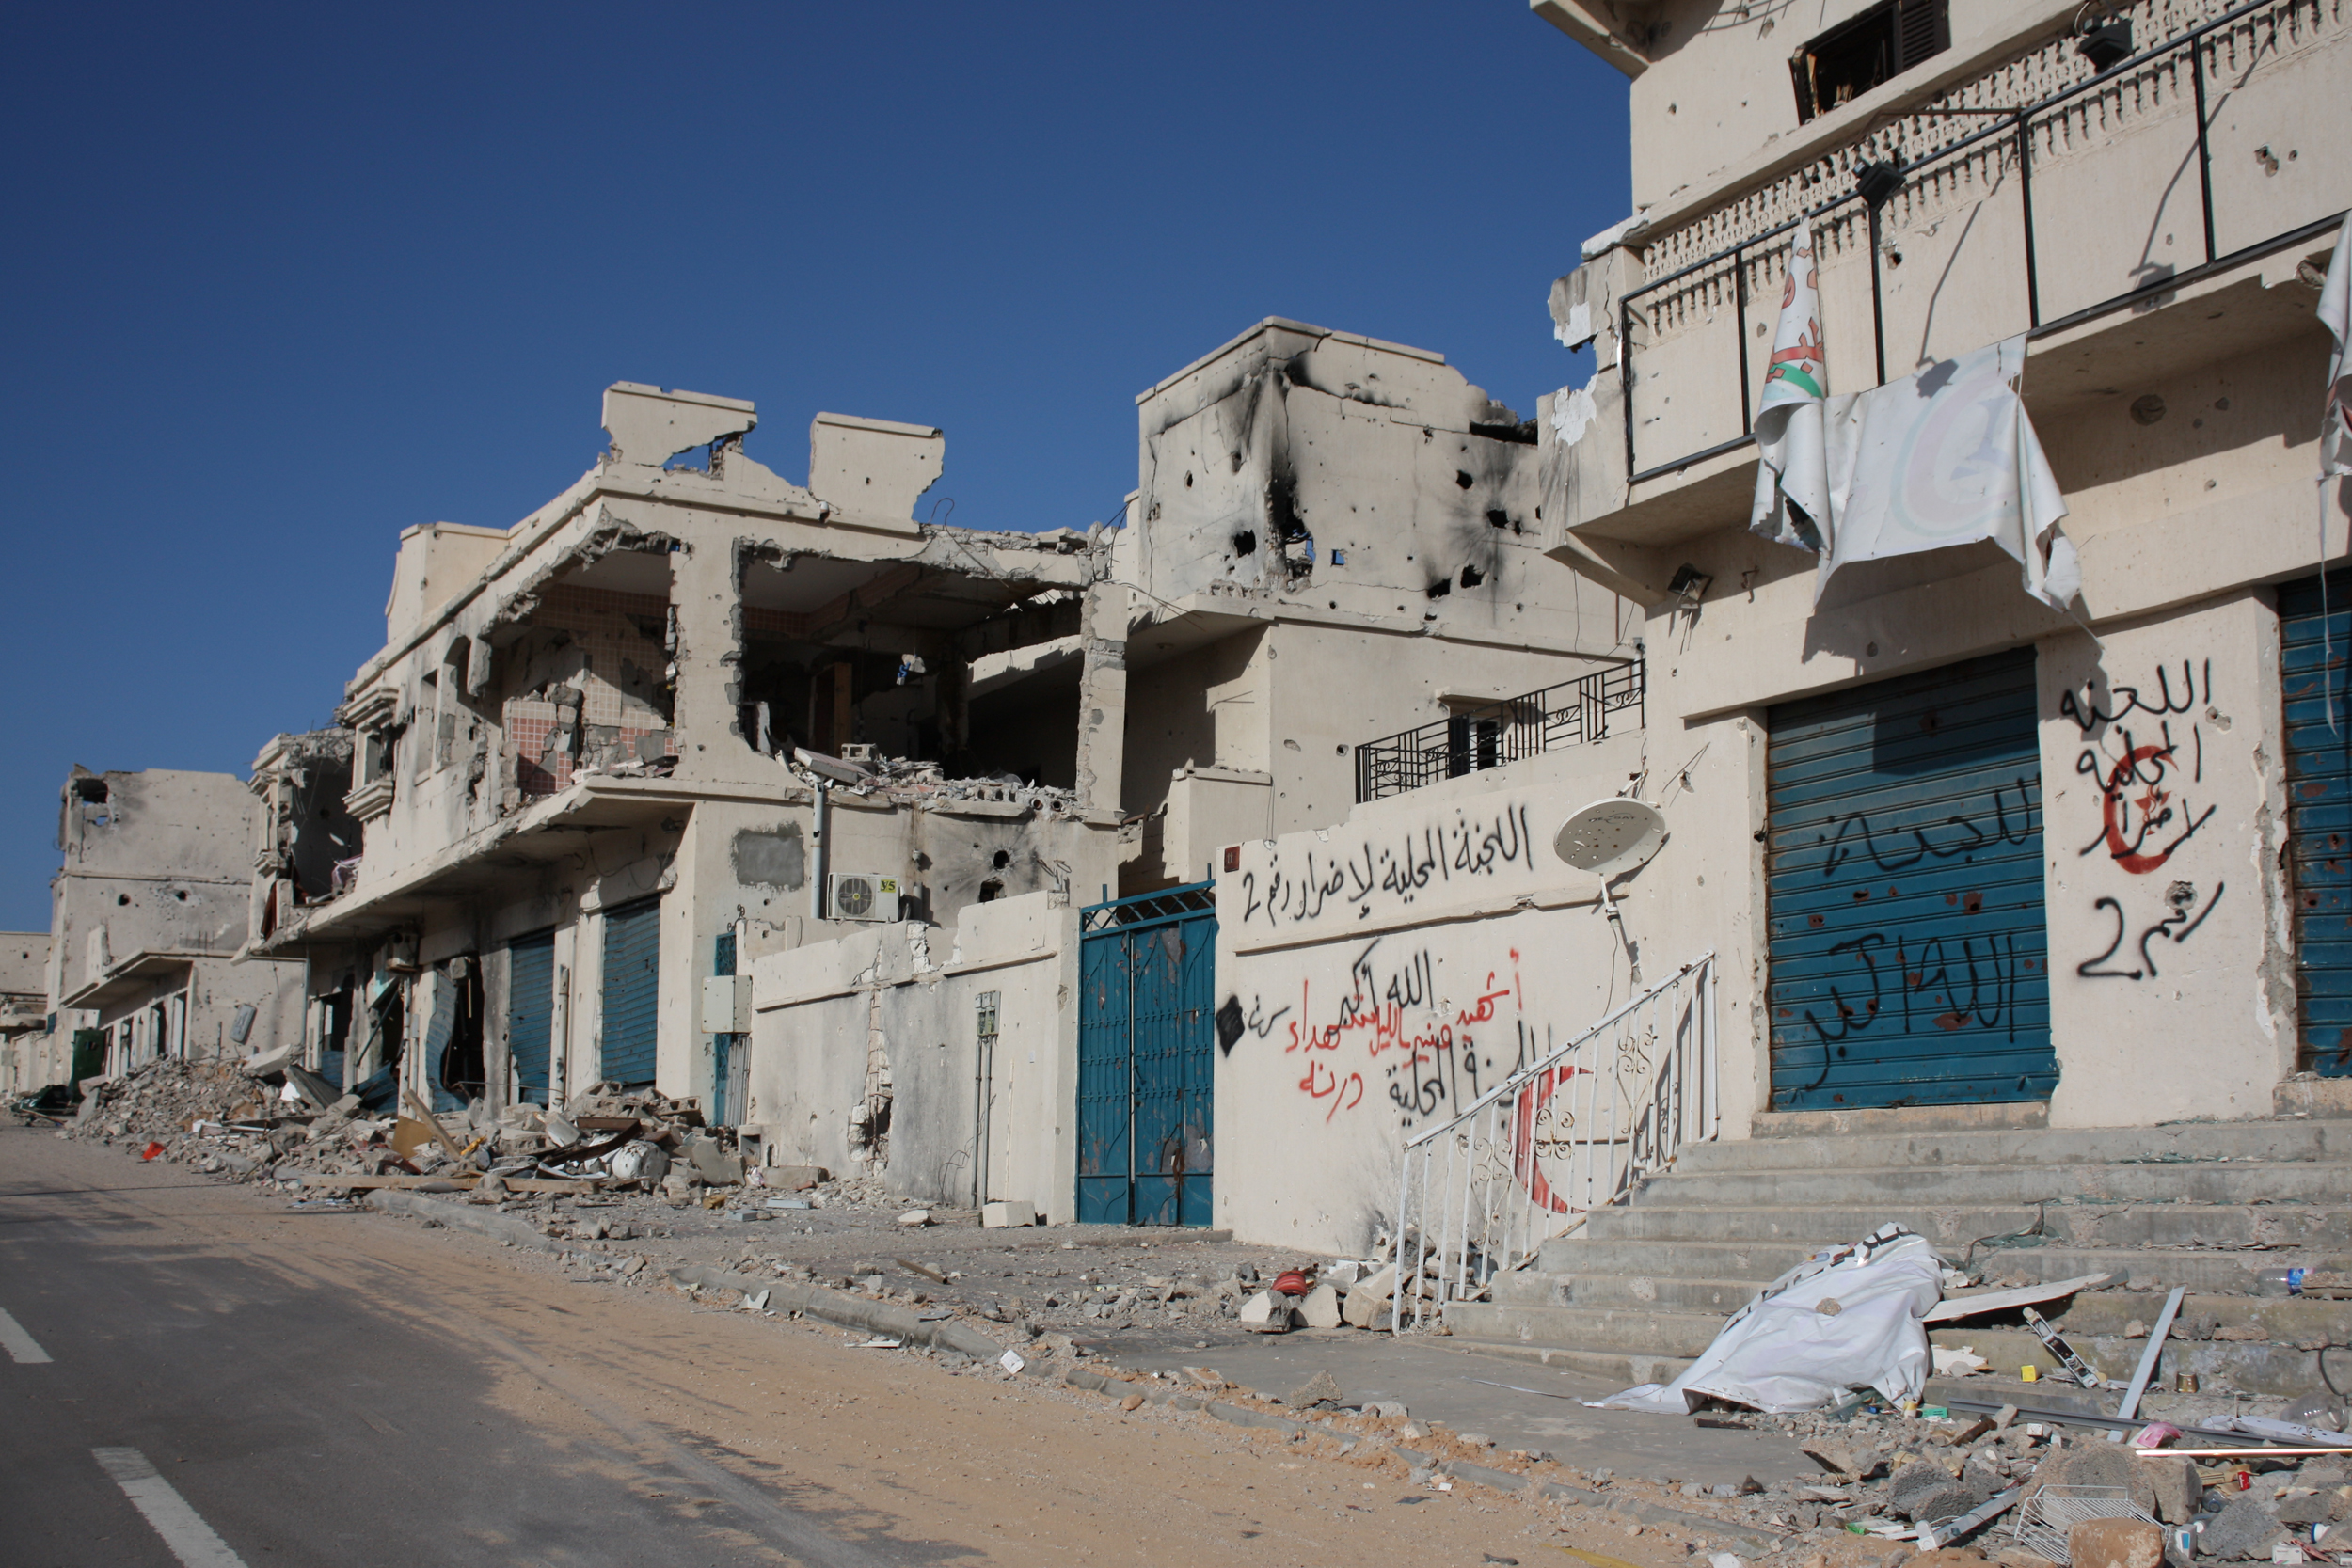 The streets of Sirte were the most heavily damaged after a nine-month war between rebels and troops loyal to former Libyan leader Muammar Qaddafi